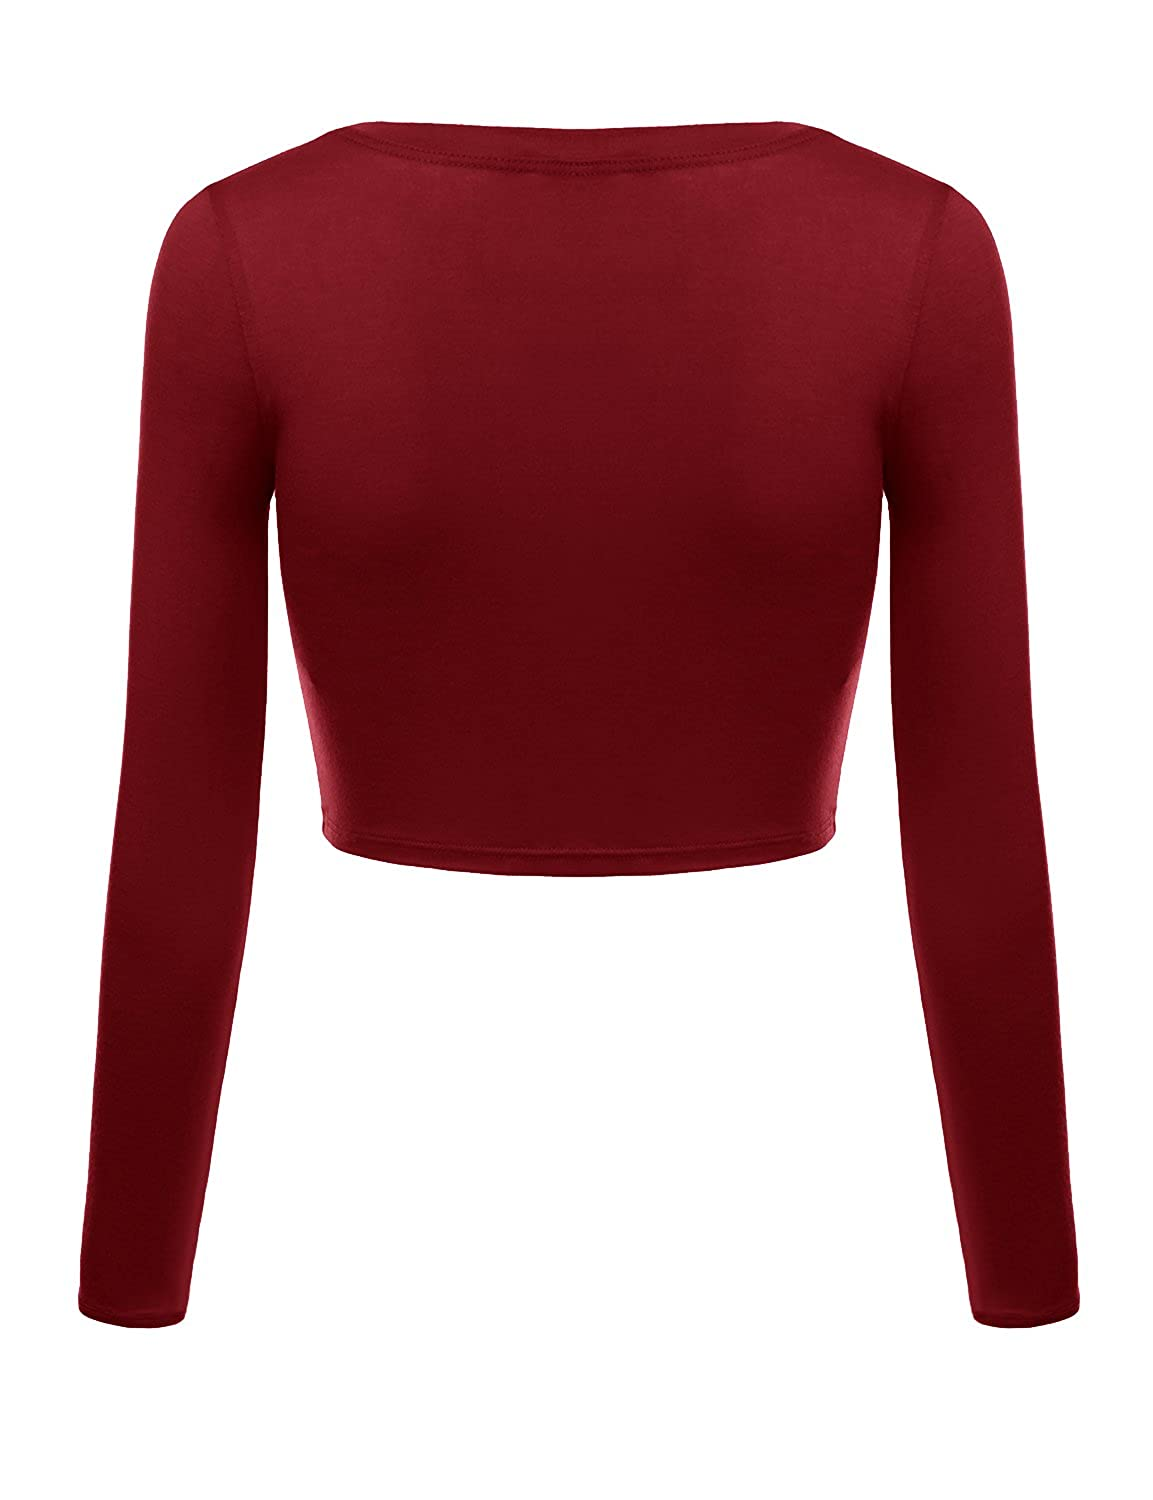 b24261e4e44 Simlu Womens Crop Top Round Neck Basic Long Sleeve Crop Top with Stretch  Reg and Plus Size - USA at Amazon Women's Clothing store: